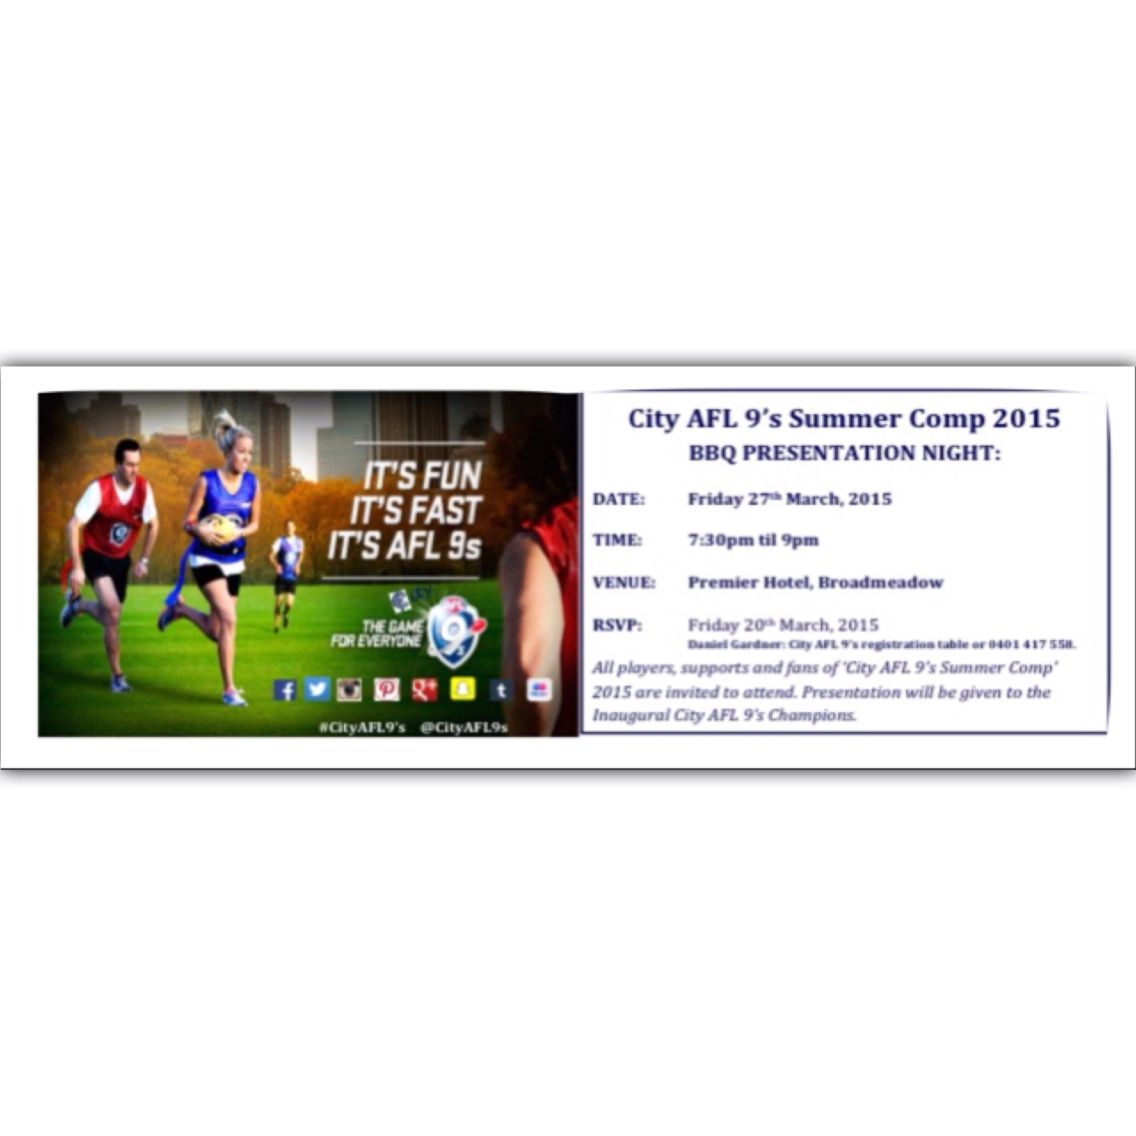 City AFL 9's Summer Competition 2015: BBQ Presentation for the 2015 City AFL 9's Summer Competition. Friday 27th March 7:30pm til 9pm at Premier Hotel, Broadmeadow. All players, supports and friends are welcome. Please RSVP for catering purposes. #CityAFL9s @CityAFL9s